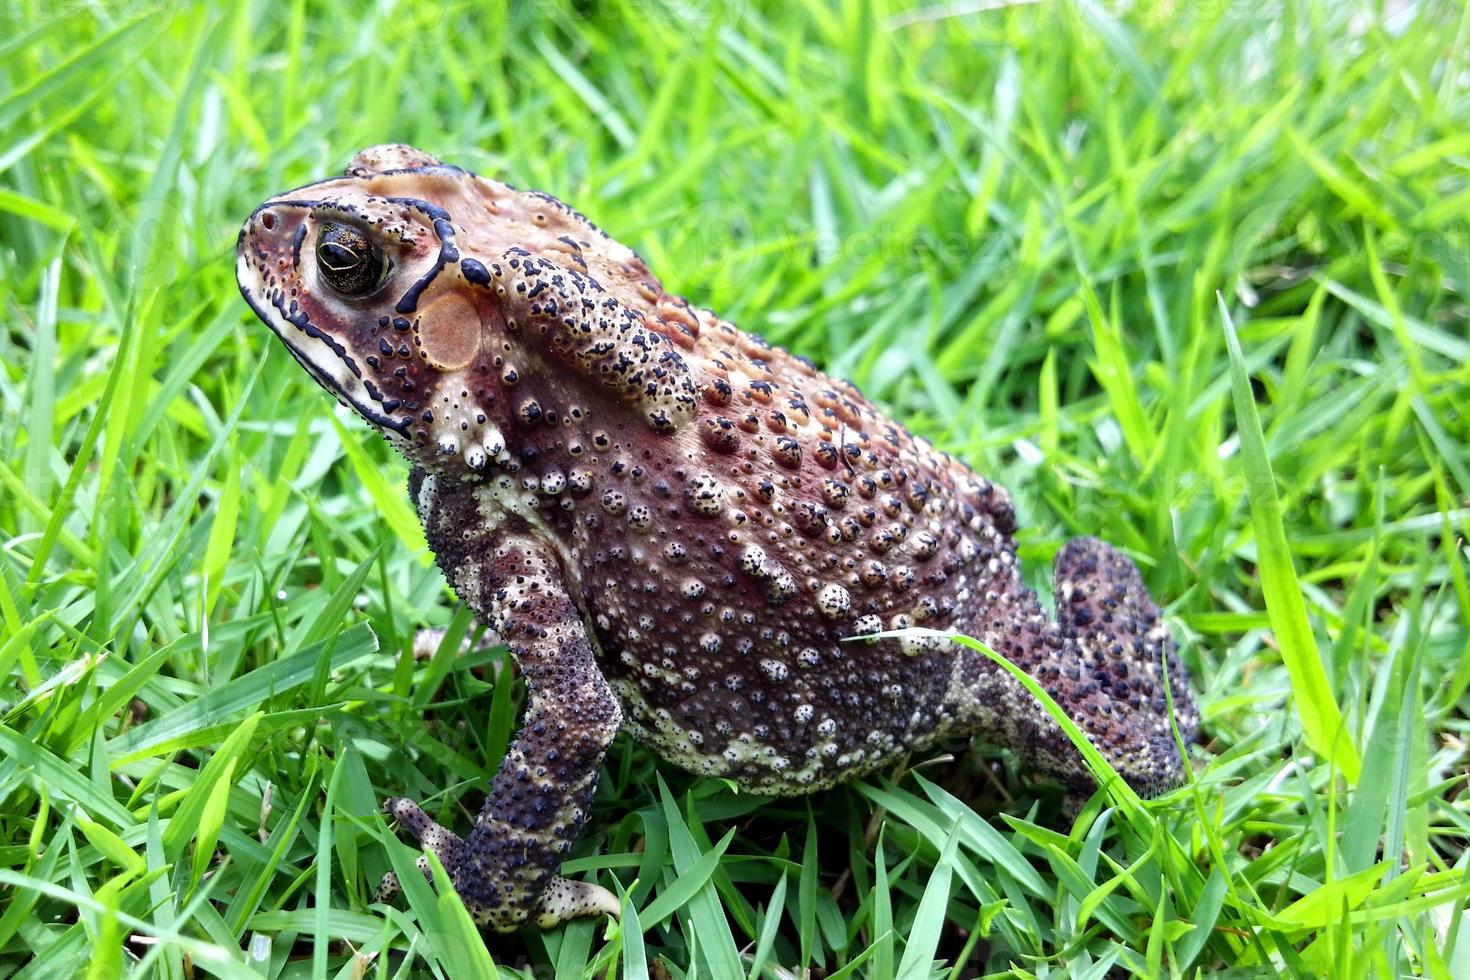 Toad close up photo